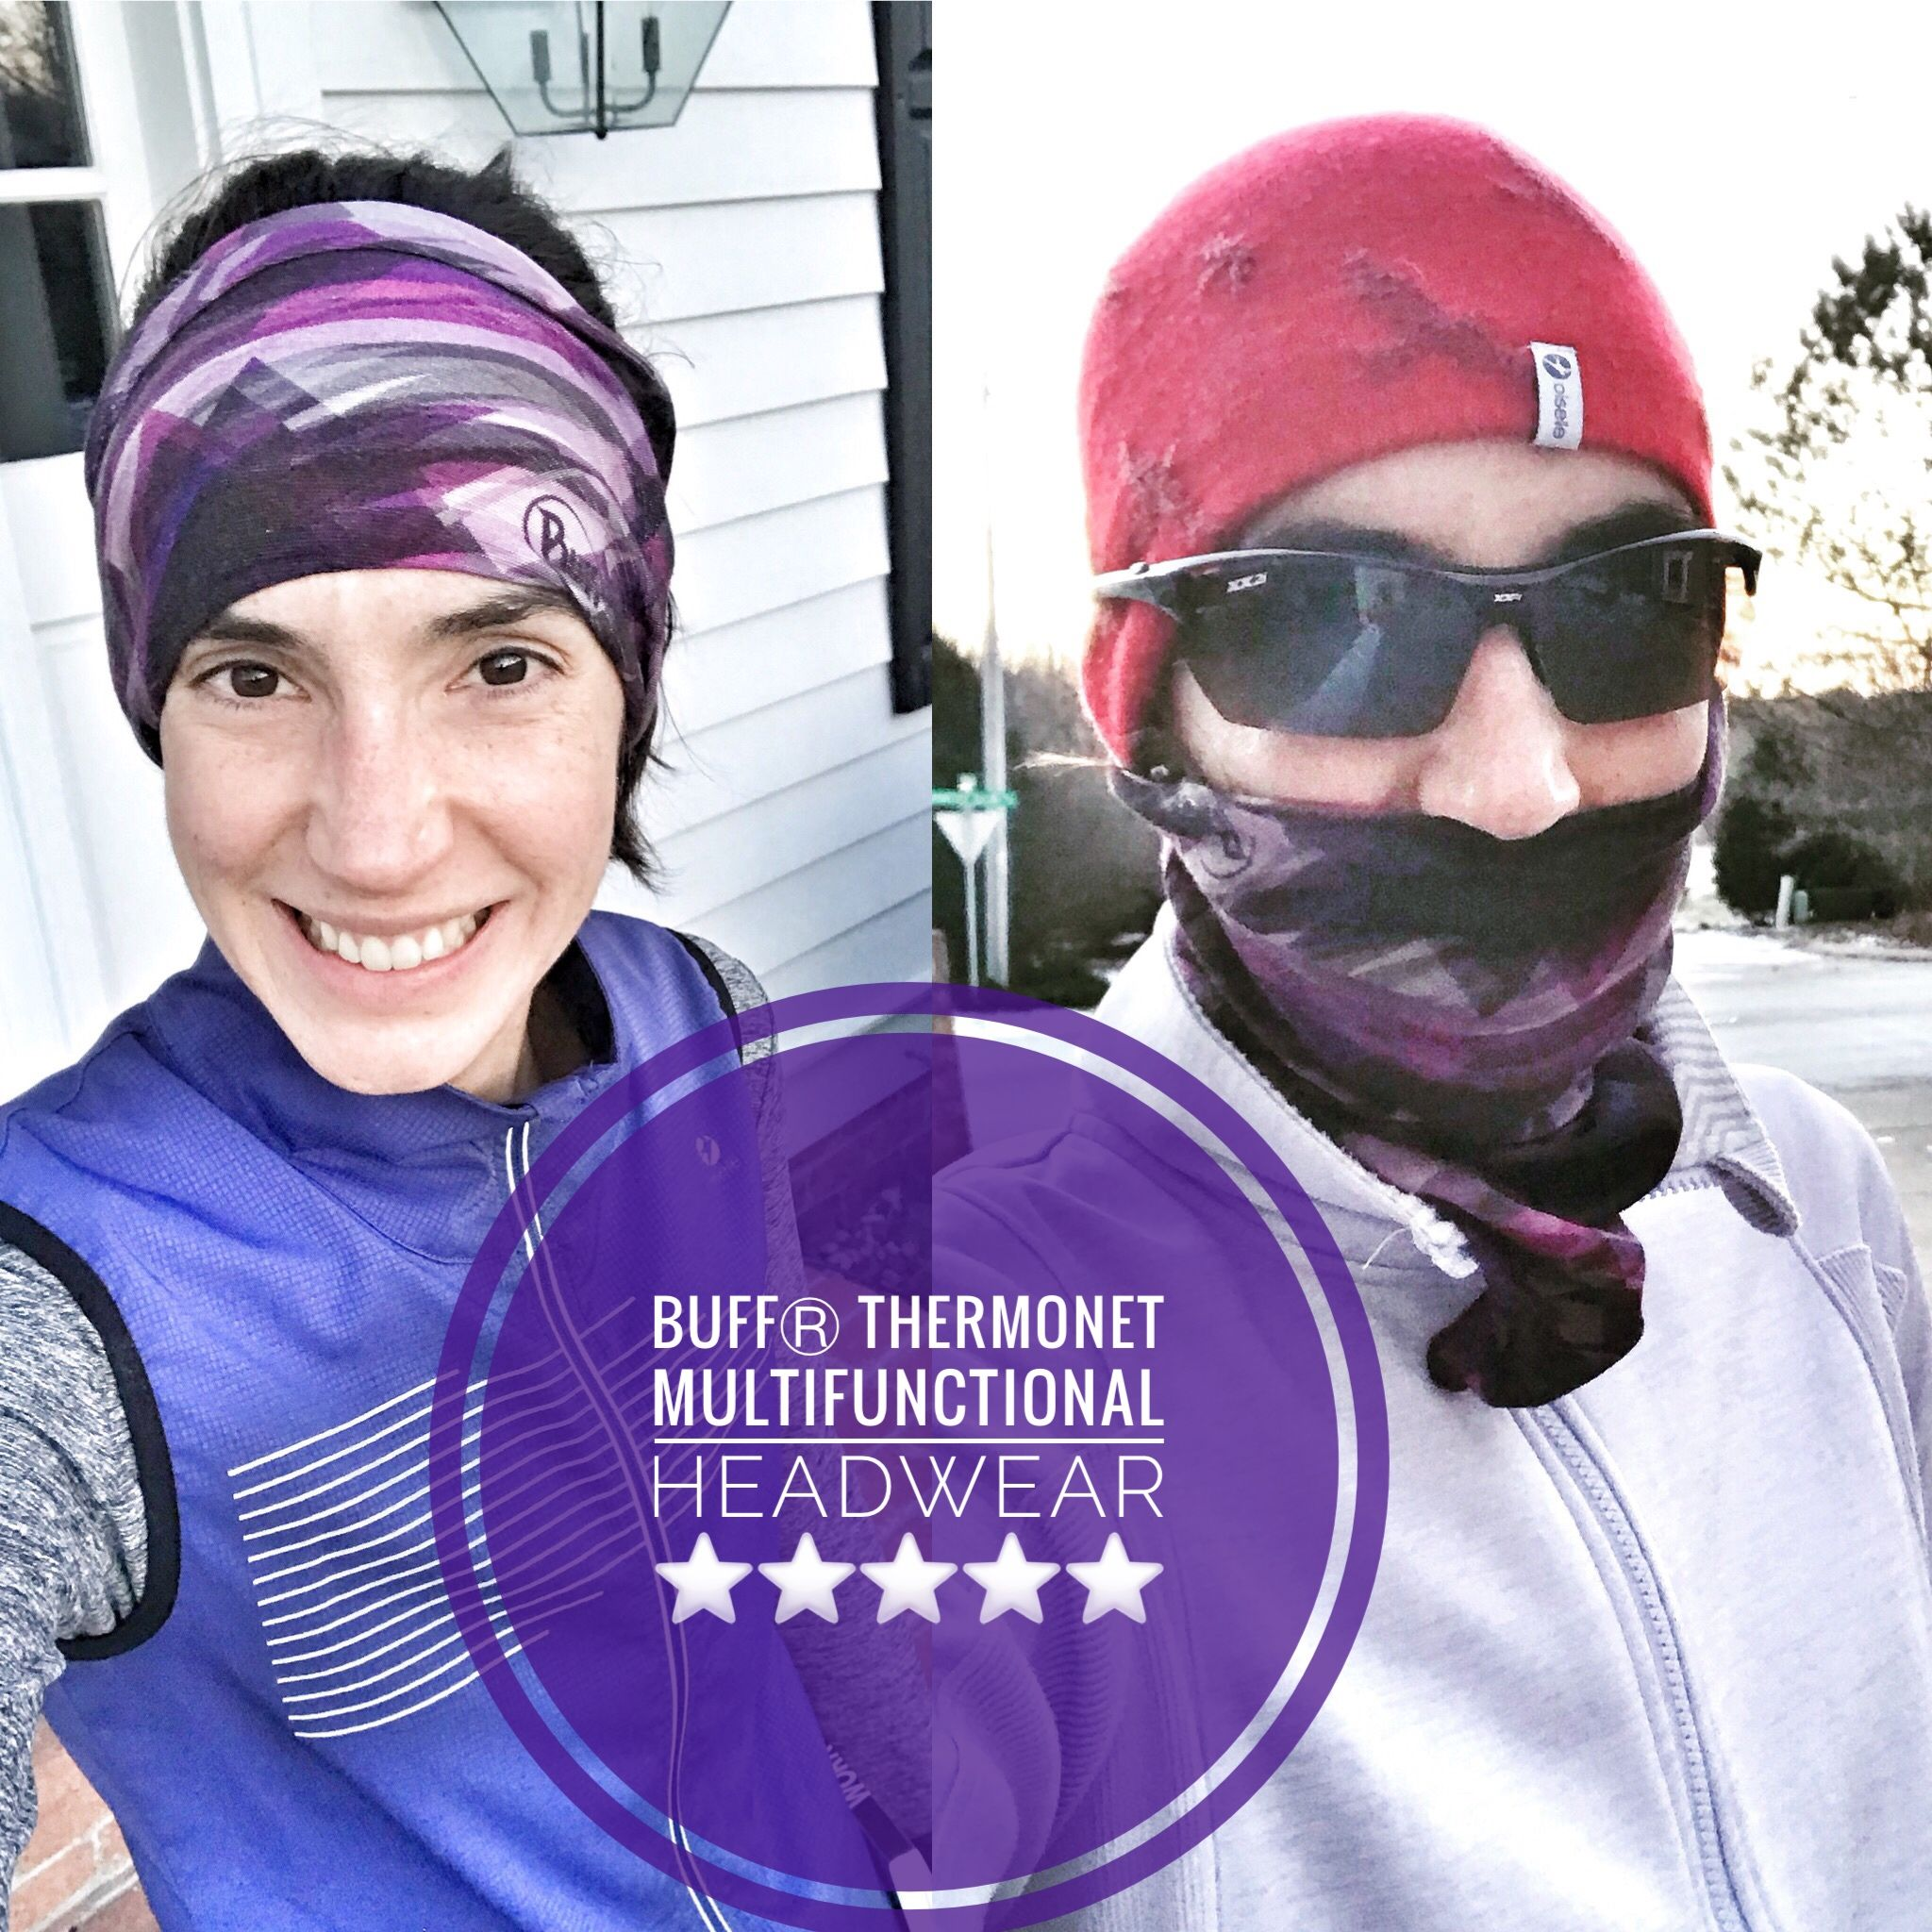 The BUFFⓇ Thermonet multifunctional headwear (in the Pantone   coloroftheyear ) is my go-to winter Running item!  bibchat  BUFF  running   bibravepro  run 4d6c816e87c